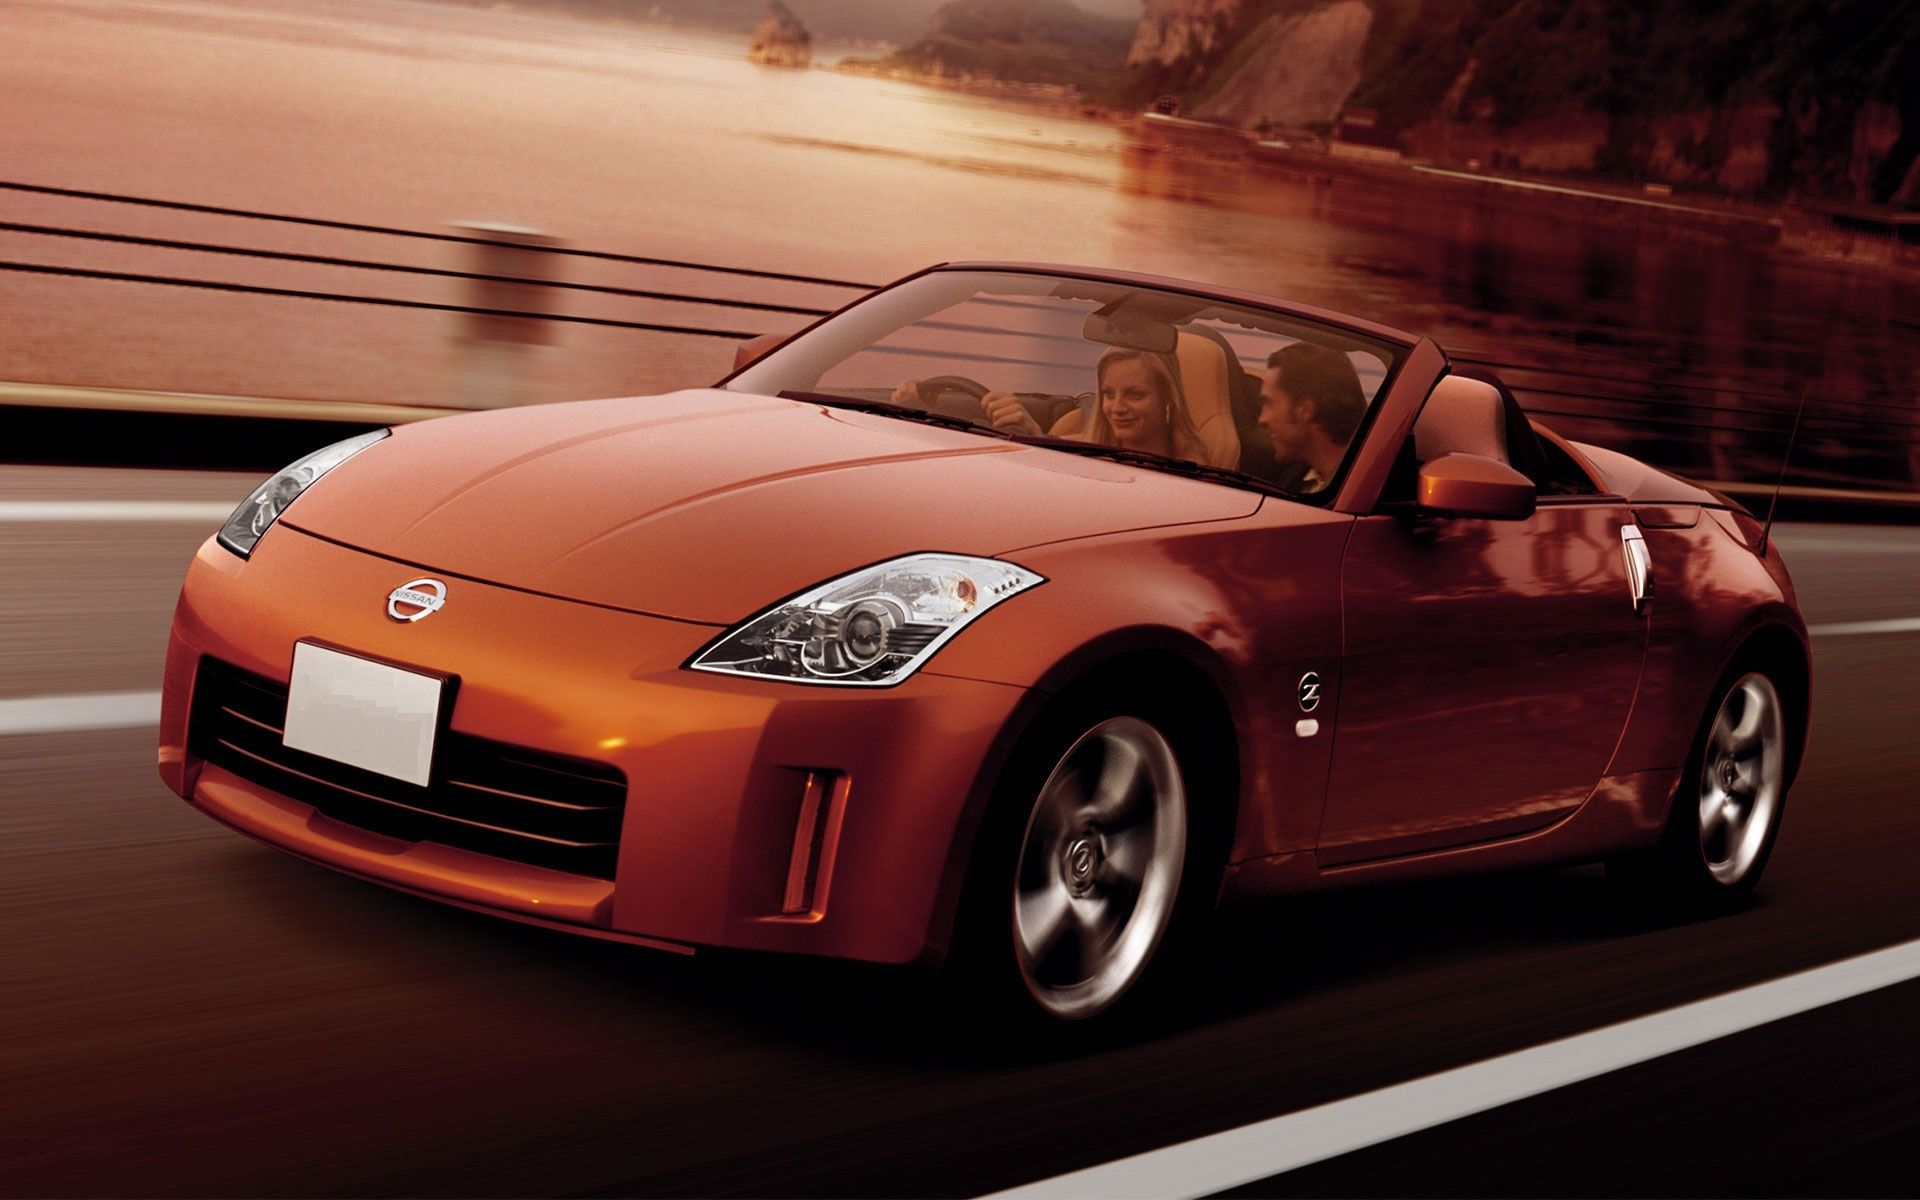 Best 25 used nissan 350z ideas on pinterest nissan z cars best 25 used nissan 350z ideas on pinterest nissan z cars nissan 350z and nissan z vanachro Choice Image